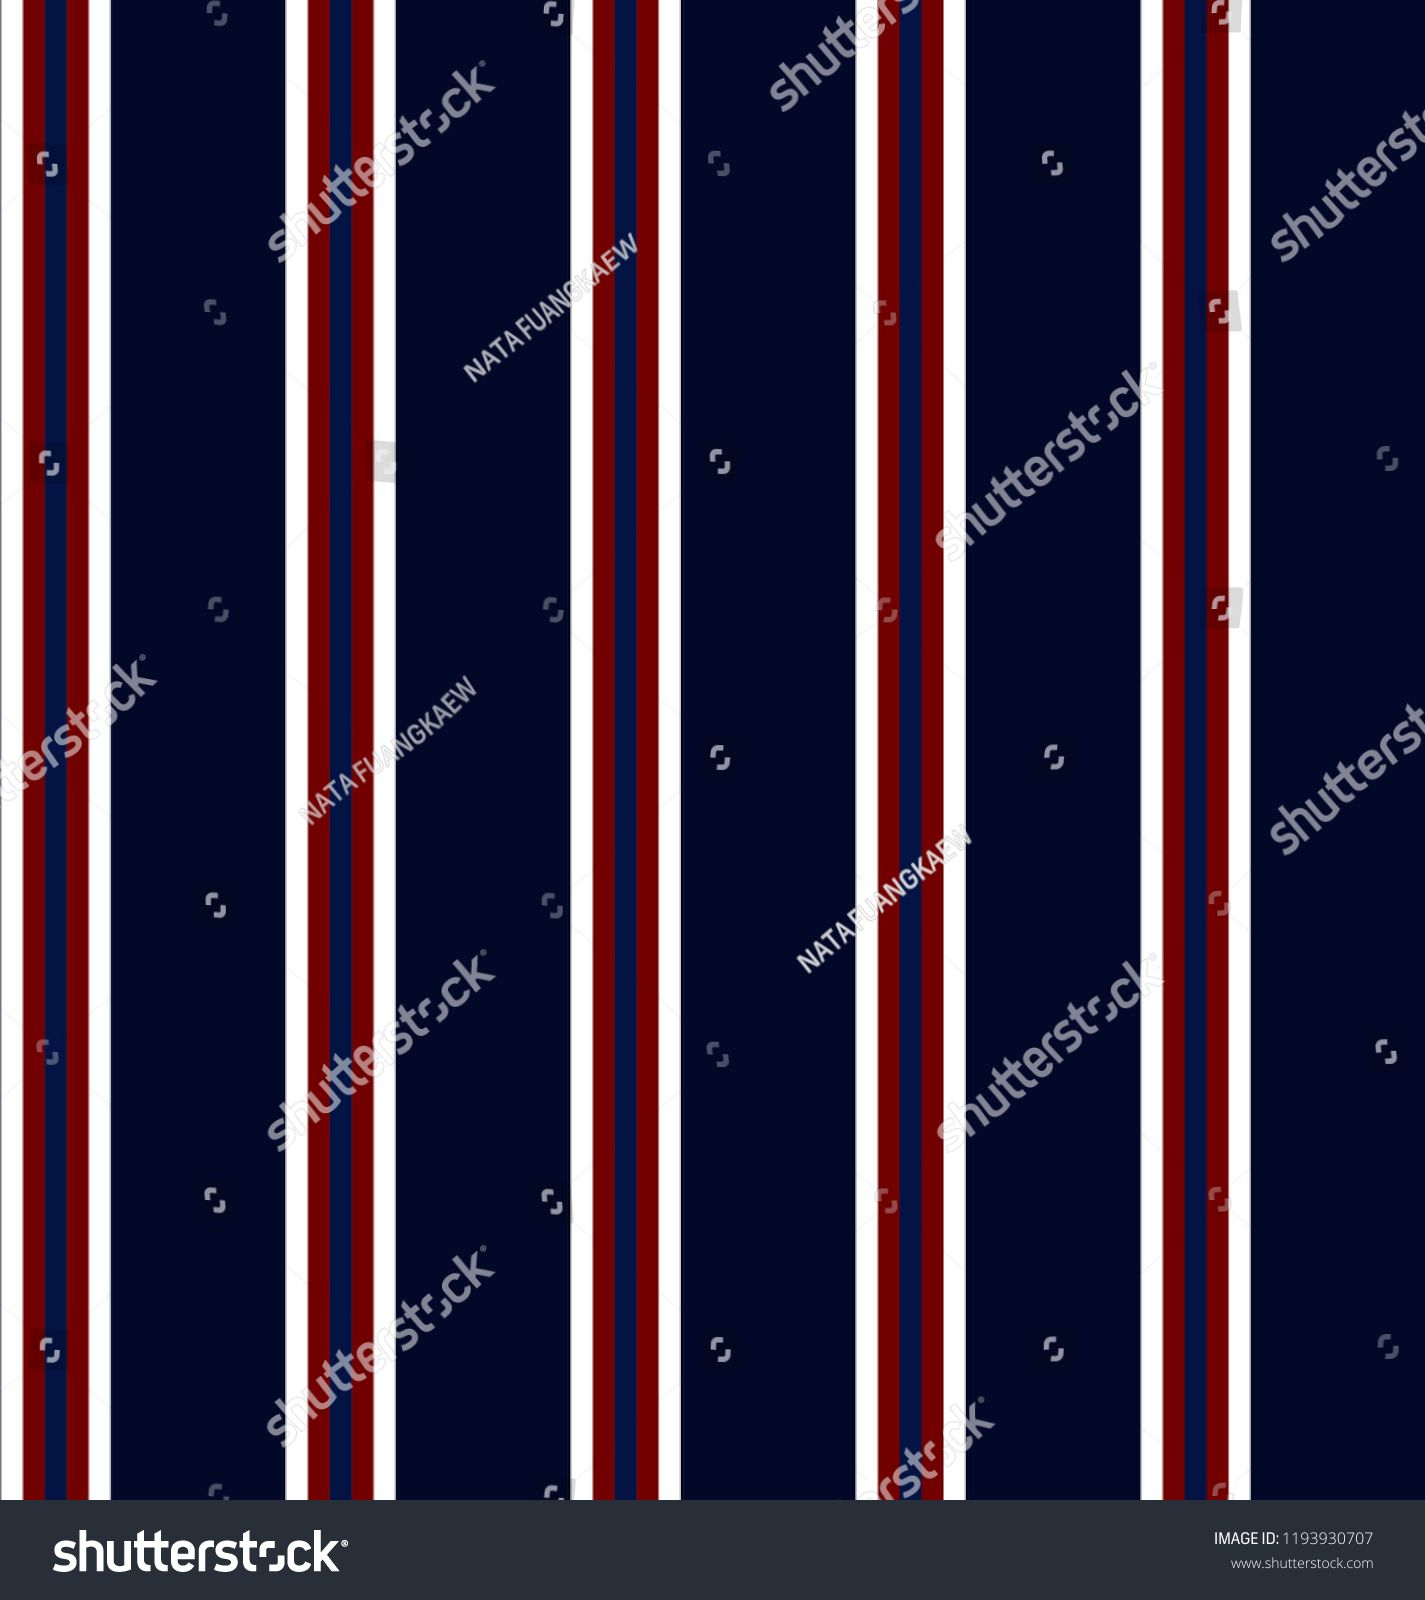 0937838c Stripe seamless pattern with navy blue,red and white colors vertical  parallel stripes.Vector pattern stripe abstract background. blue #red#white#navy